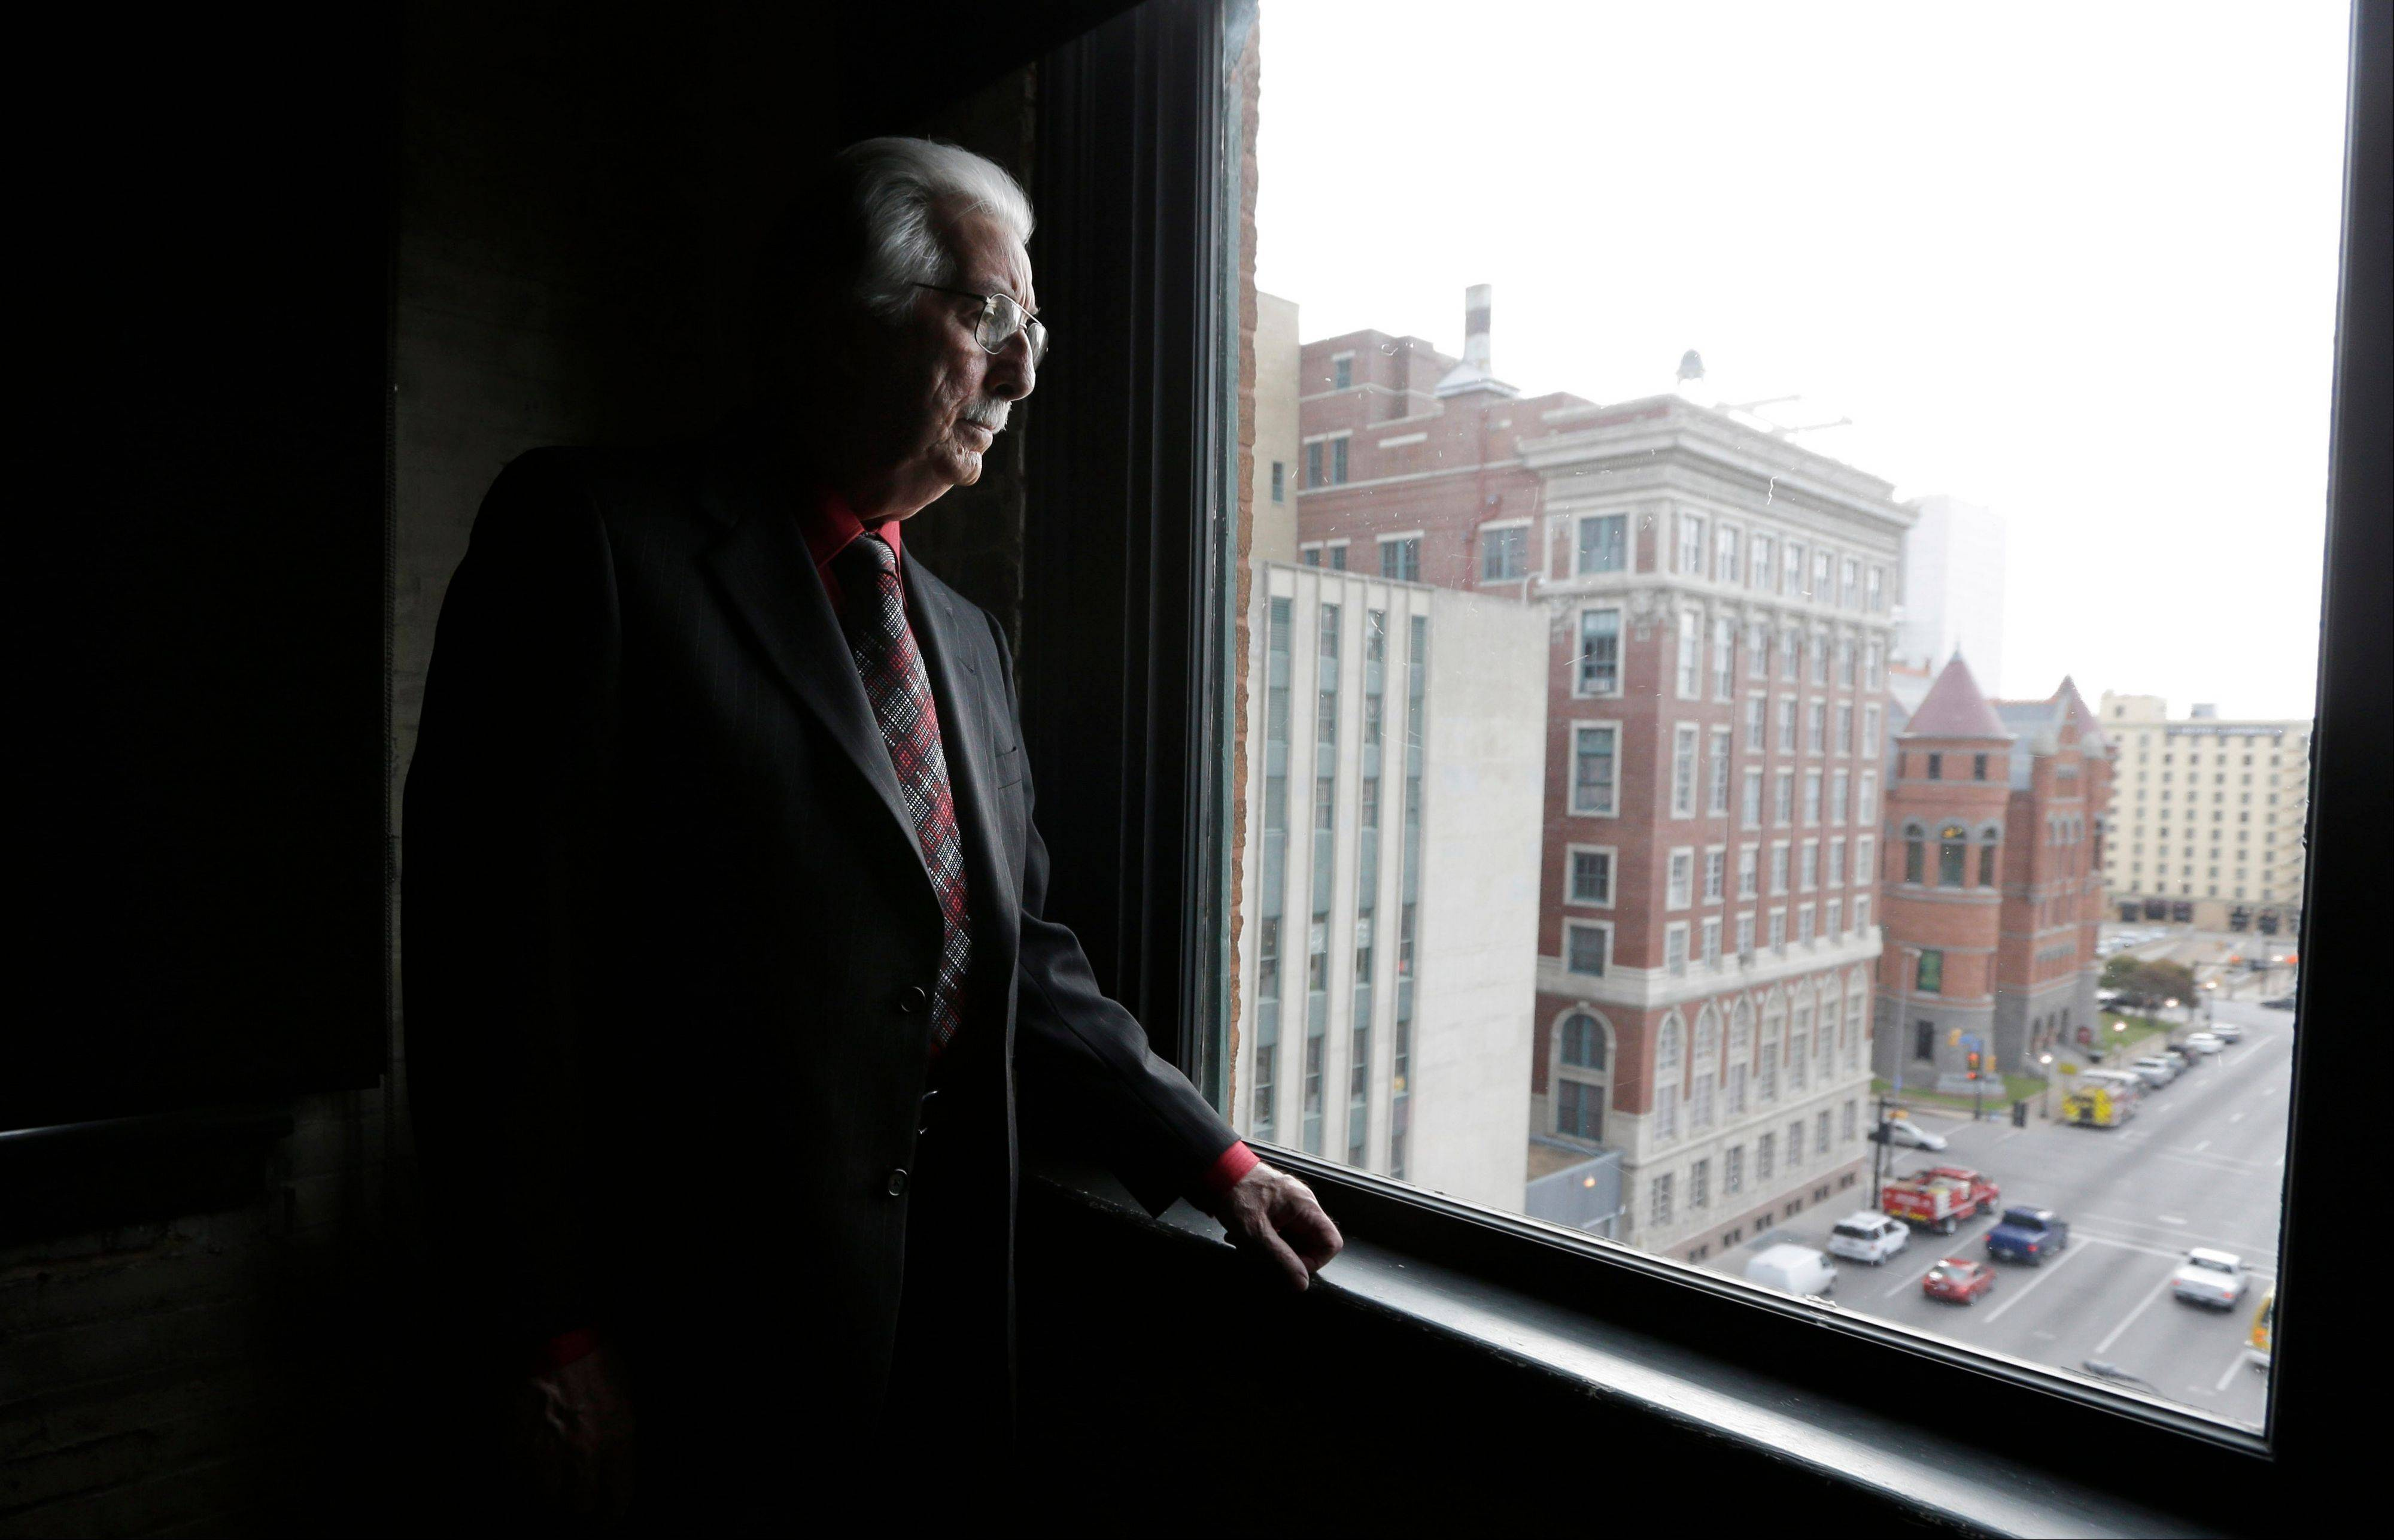 Buell Wesley Frazier looks out onto Dealey Plaza from a window on the seventh floor of the Texas School Book Depository building in Dallas on Thursday. Frazier was a co-worker of Lee Harvey Oswald at the depository and gave him a ride to work on the day of the assassination of John F. Kennedy.